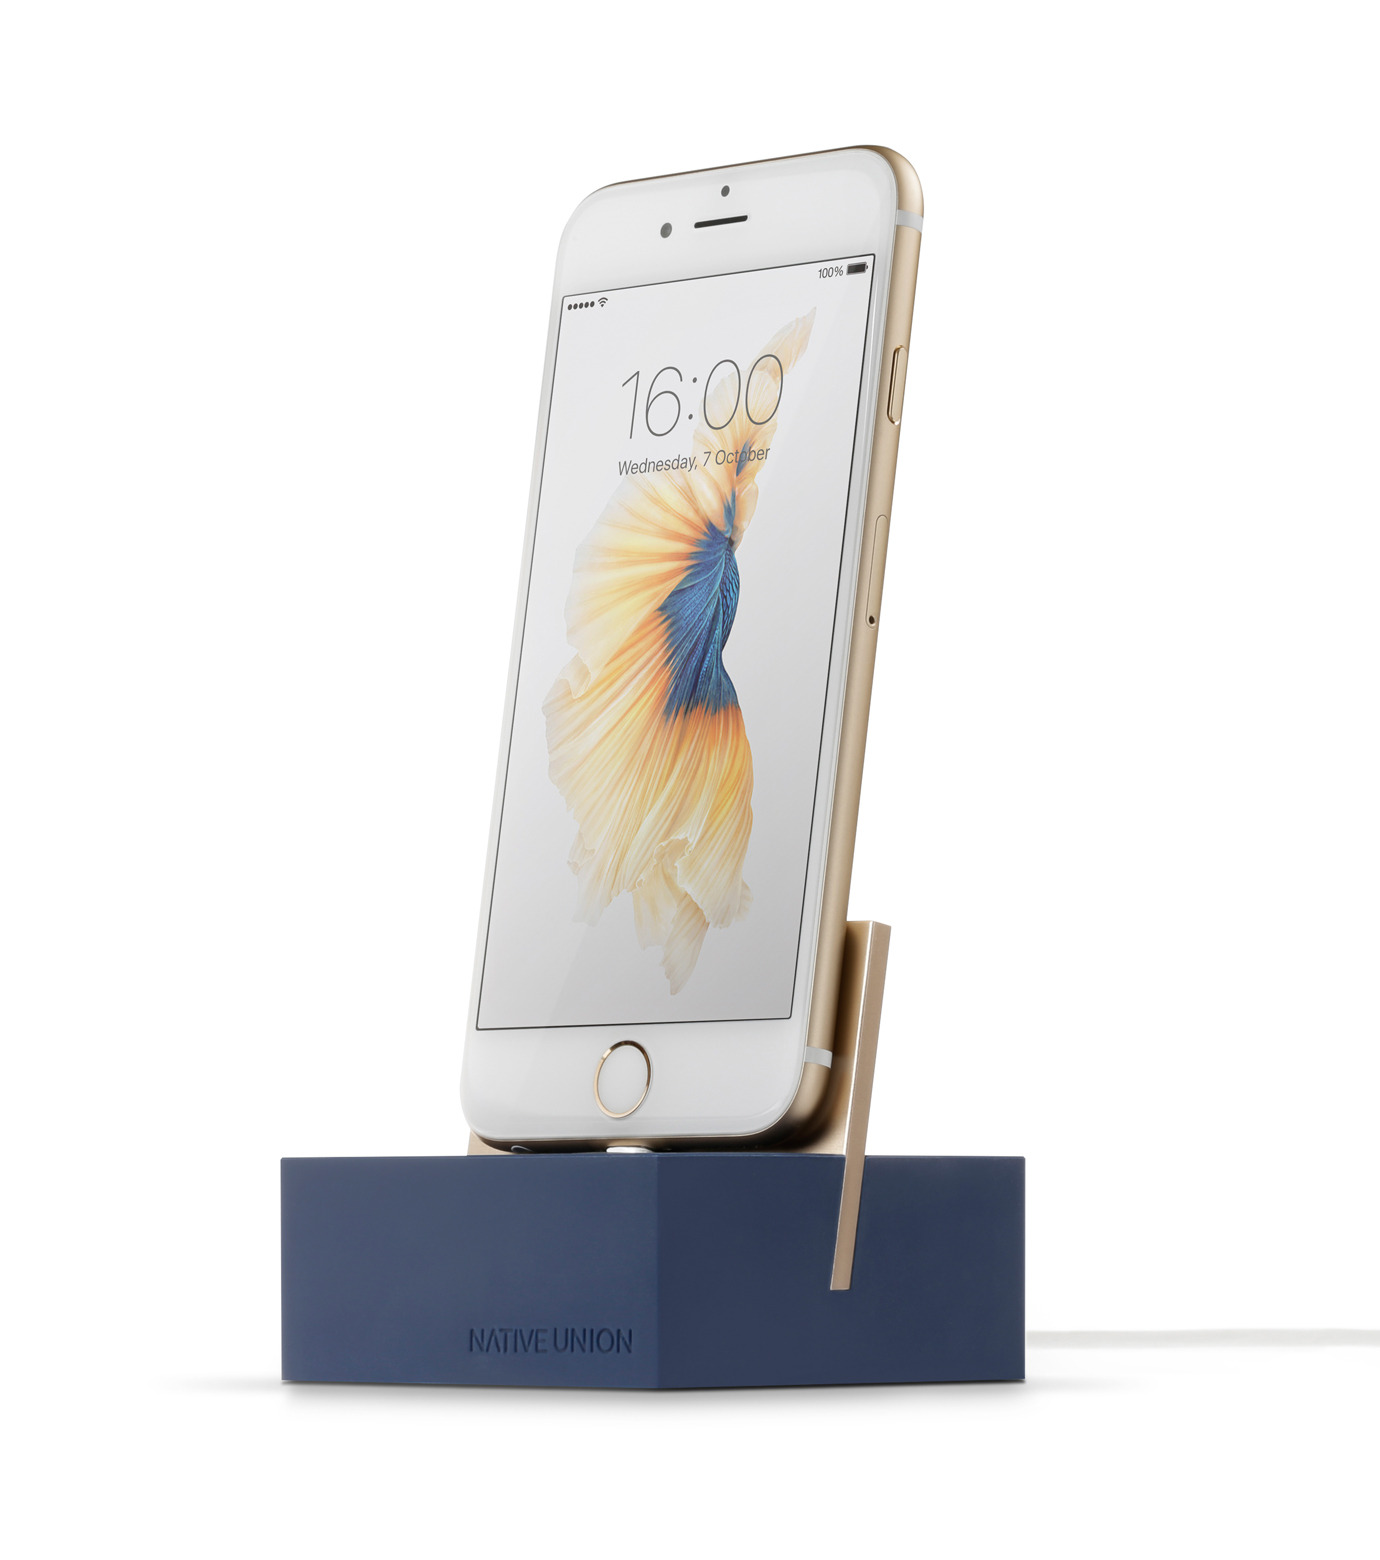 Native Union(ネイティブ ユニオン)のDOCK FOR IPHONE WITH 1.2M CABLE-MARI-NAVY(ガジェット/gadgets)-NU-DOCK-IPC4-93 拡大詳細画像1